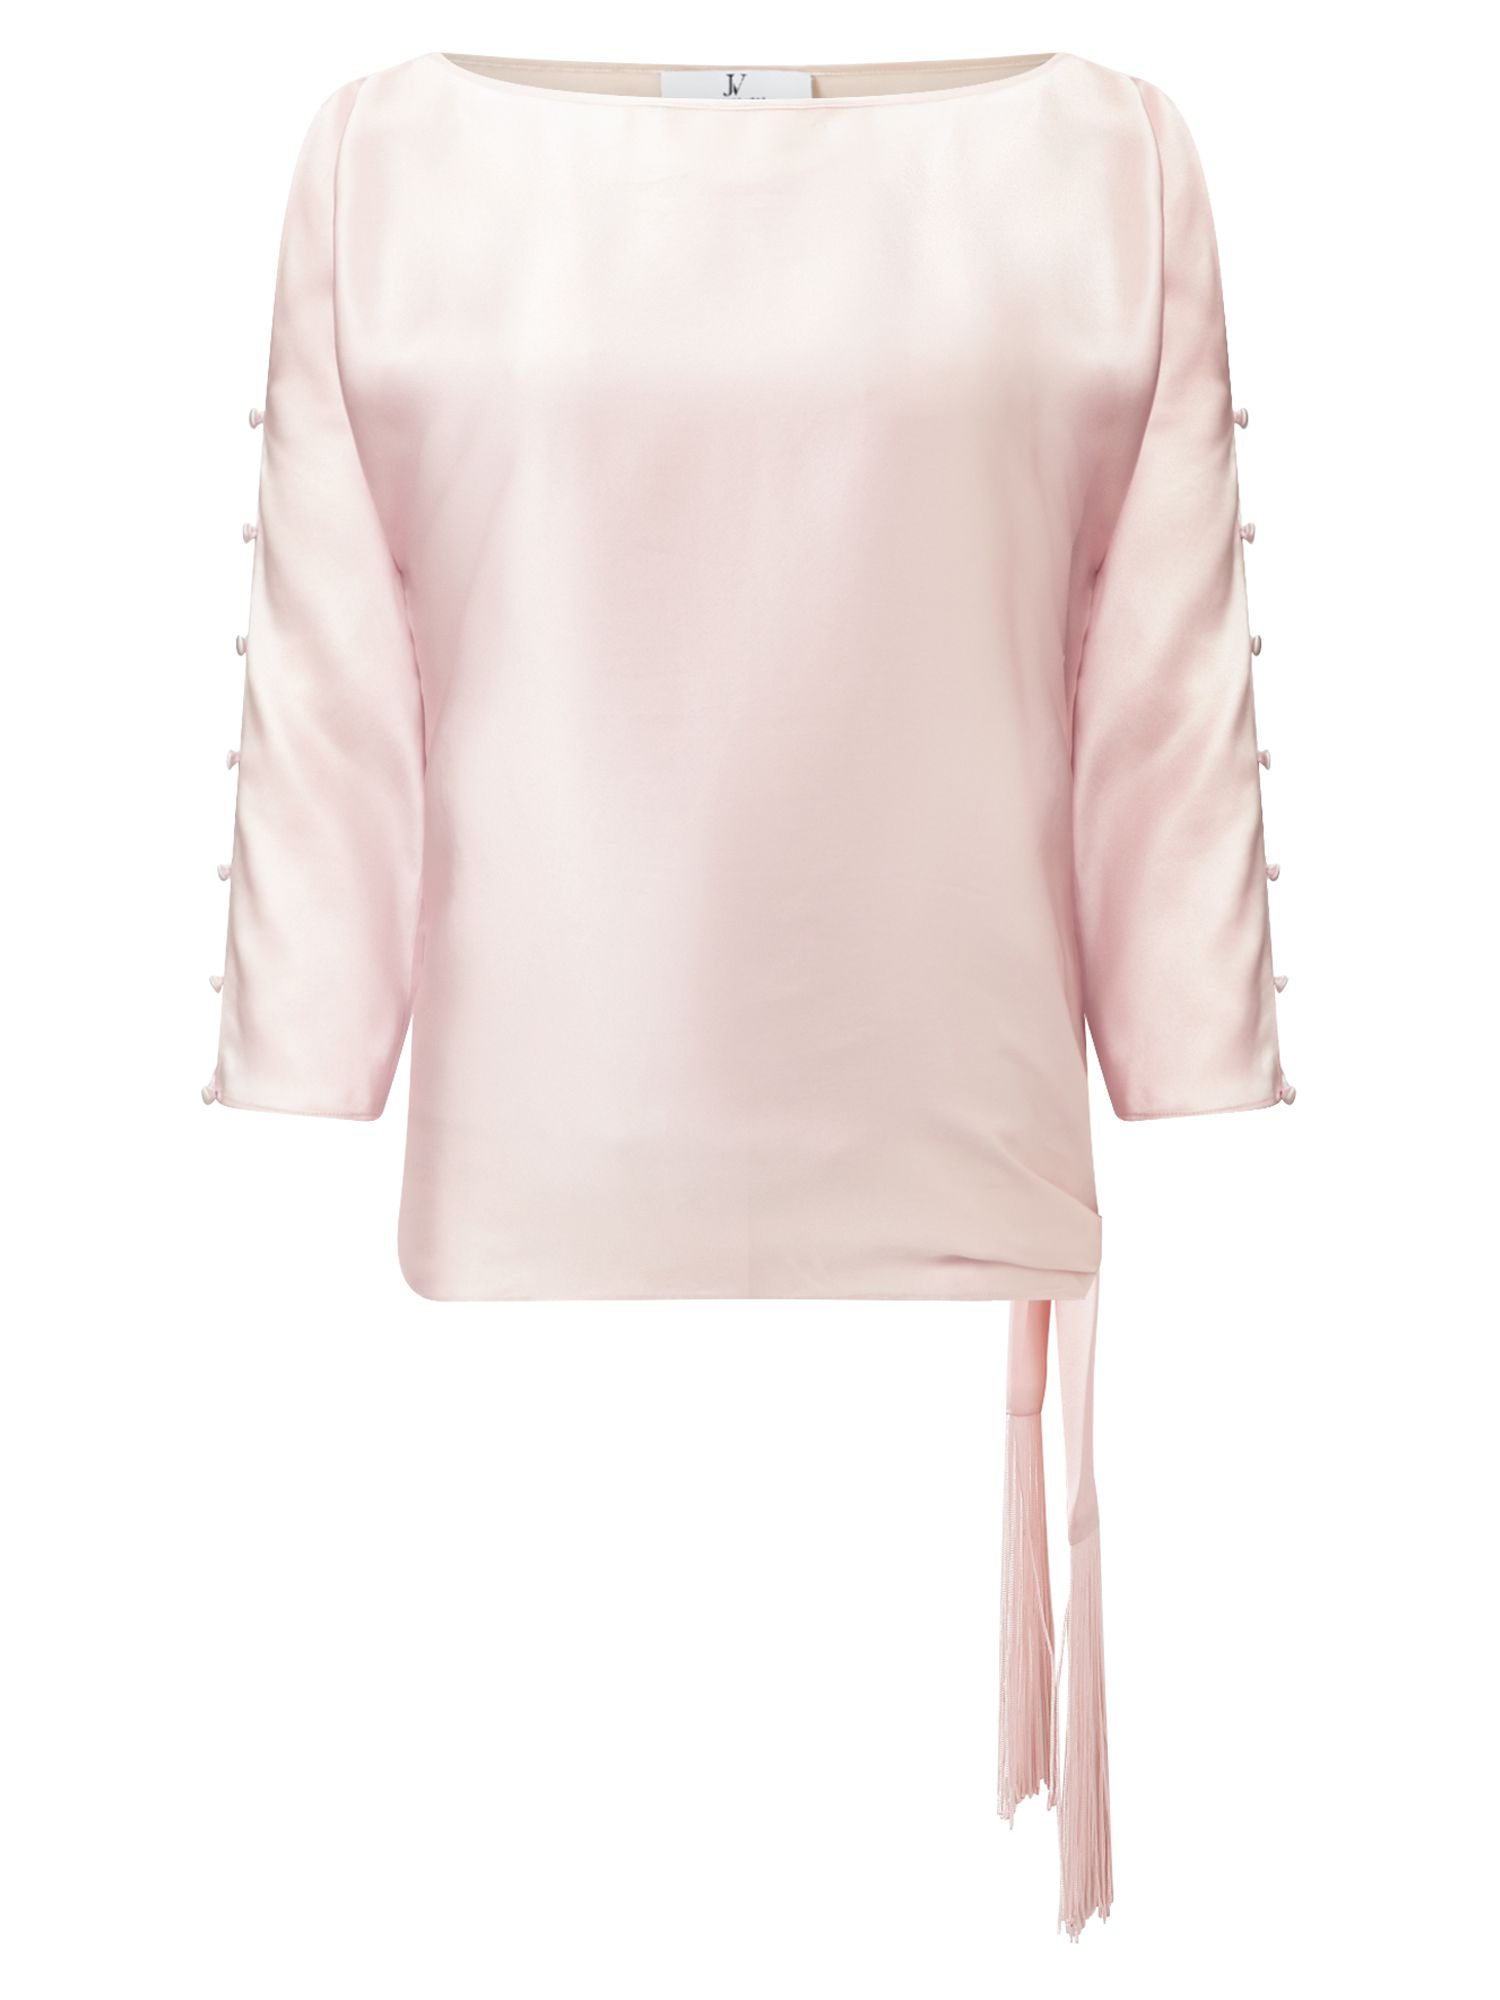 Jacques Vert Tie Side Fringed Top, Pink